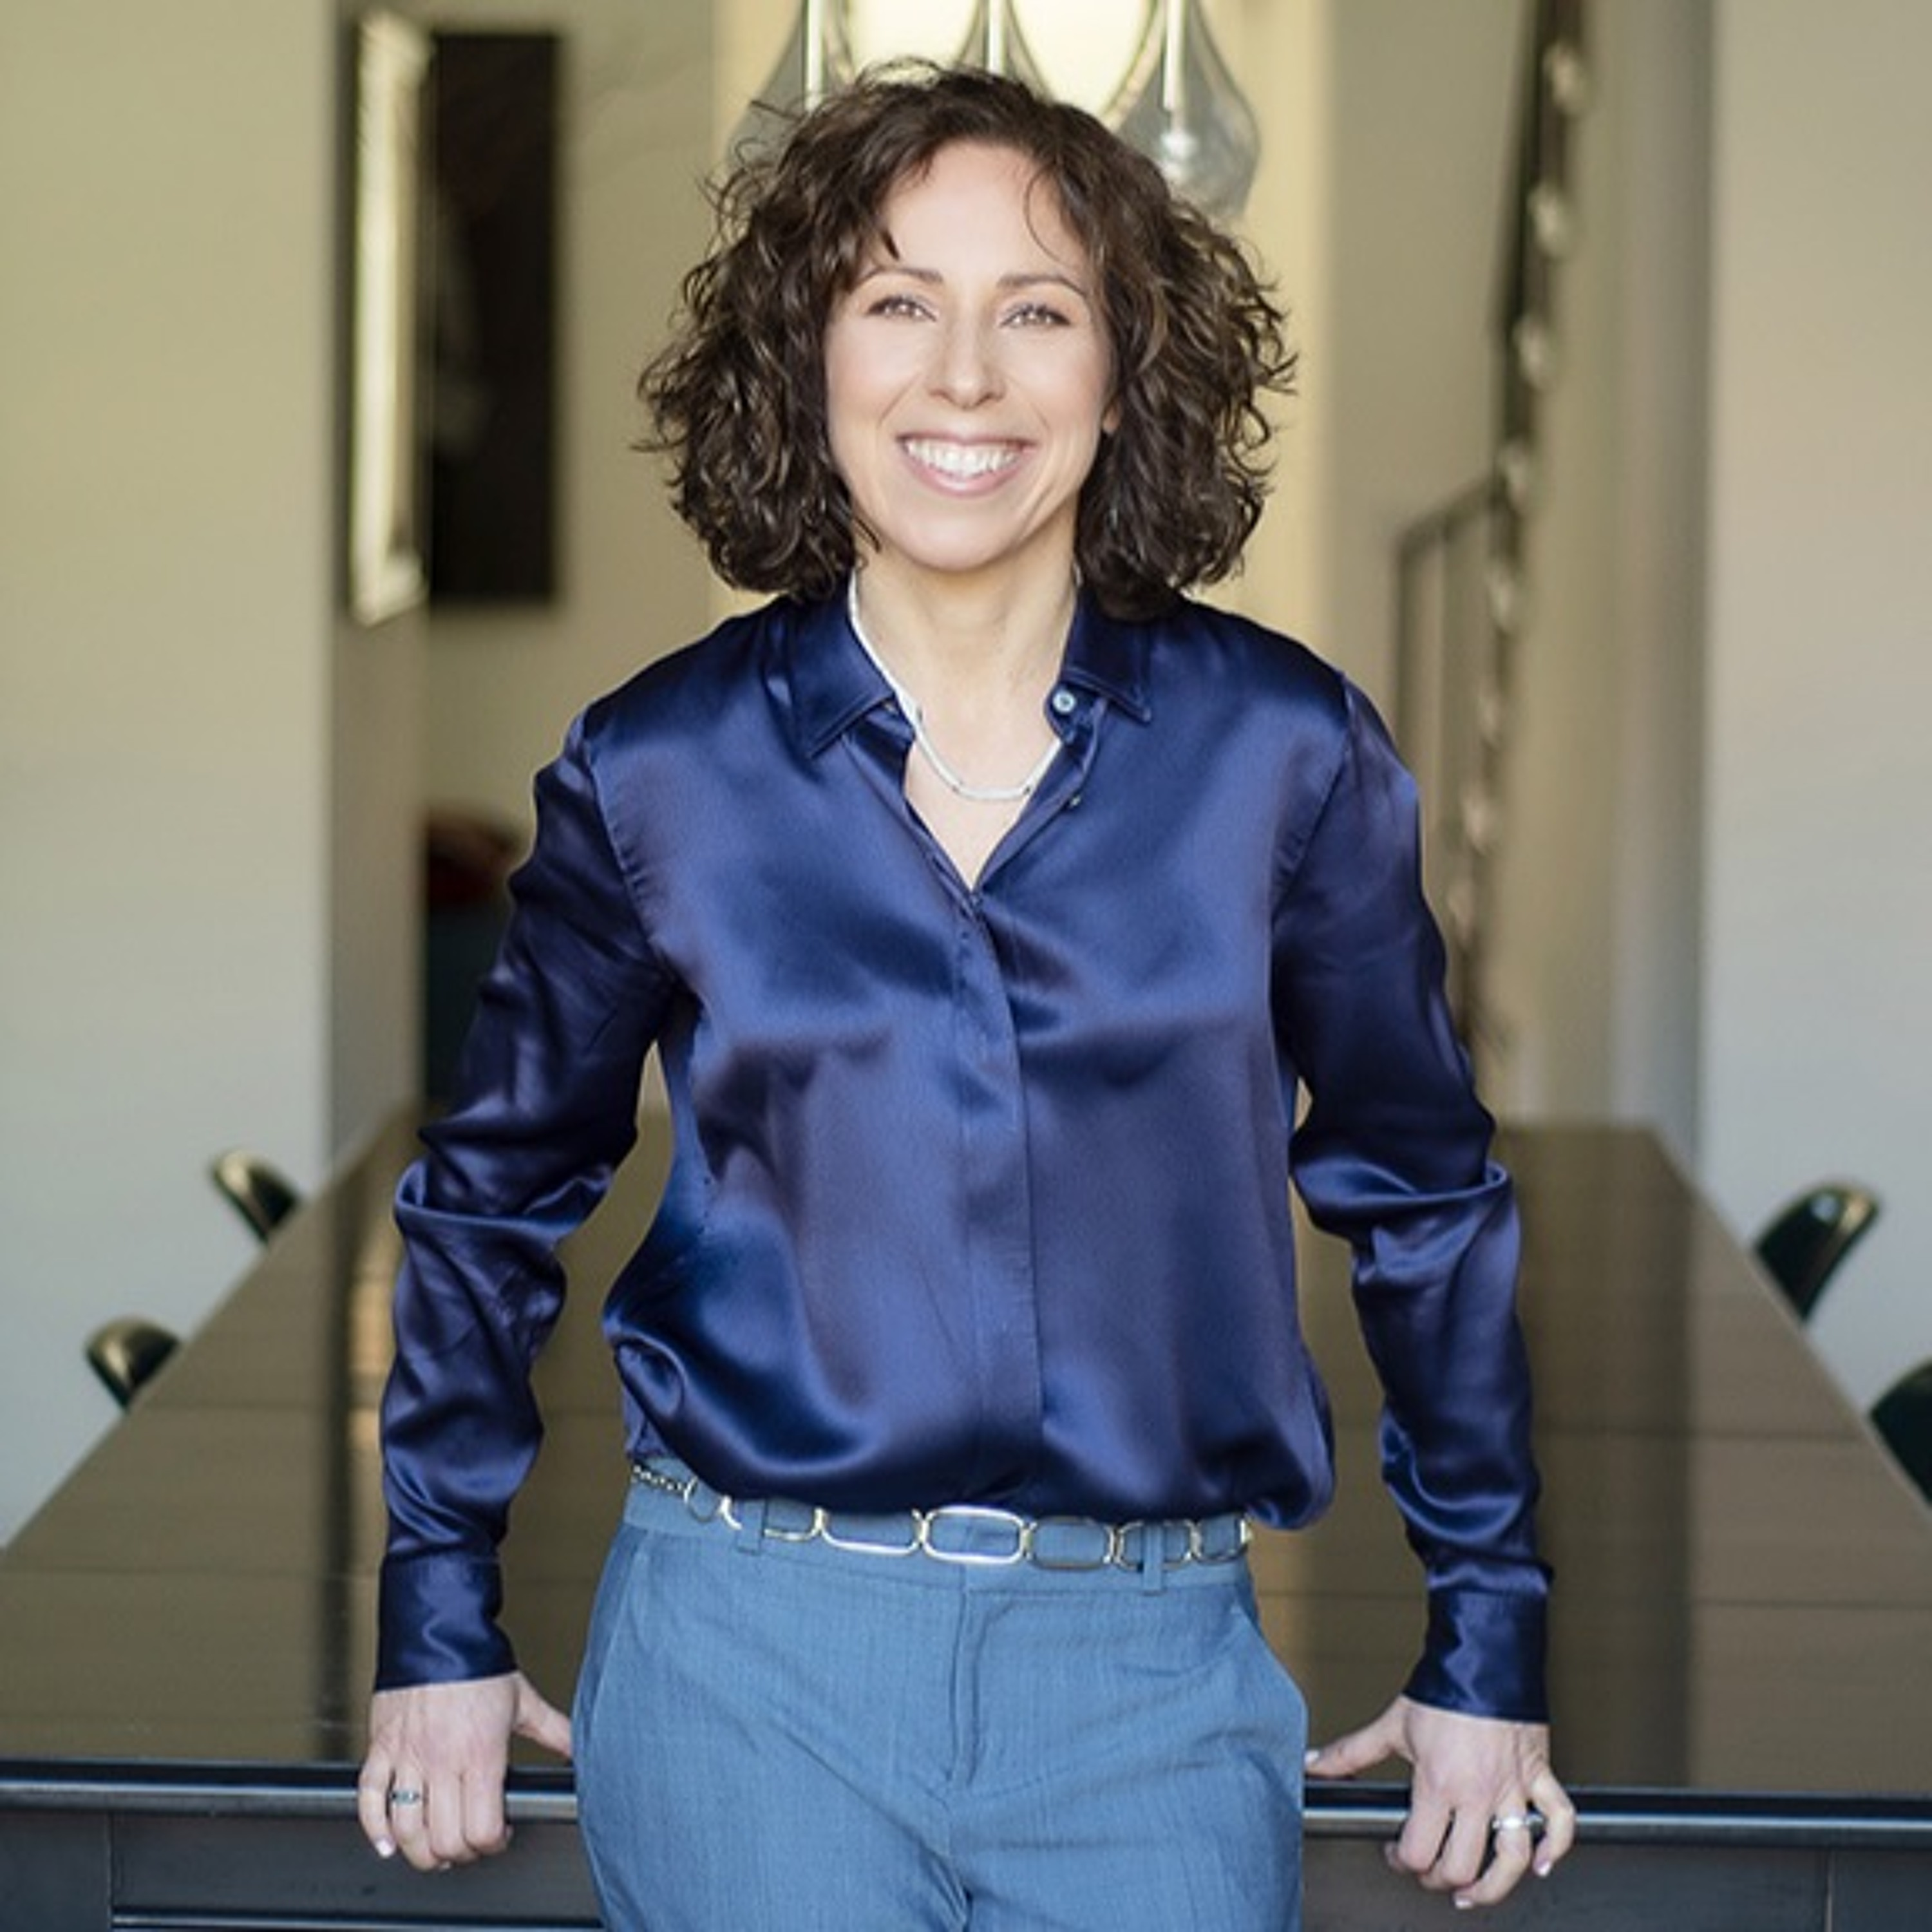 Esther Weinberg of The Ready Zone on Building Cultures of Trust, Respect & Safety